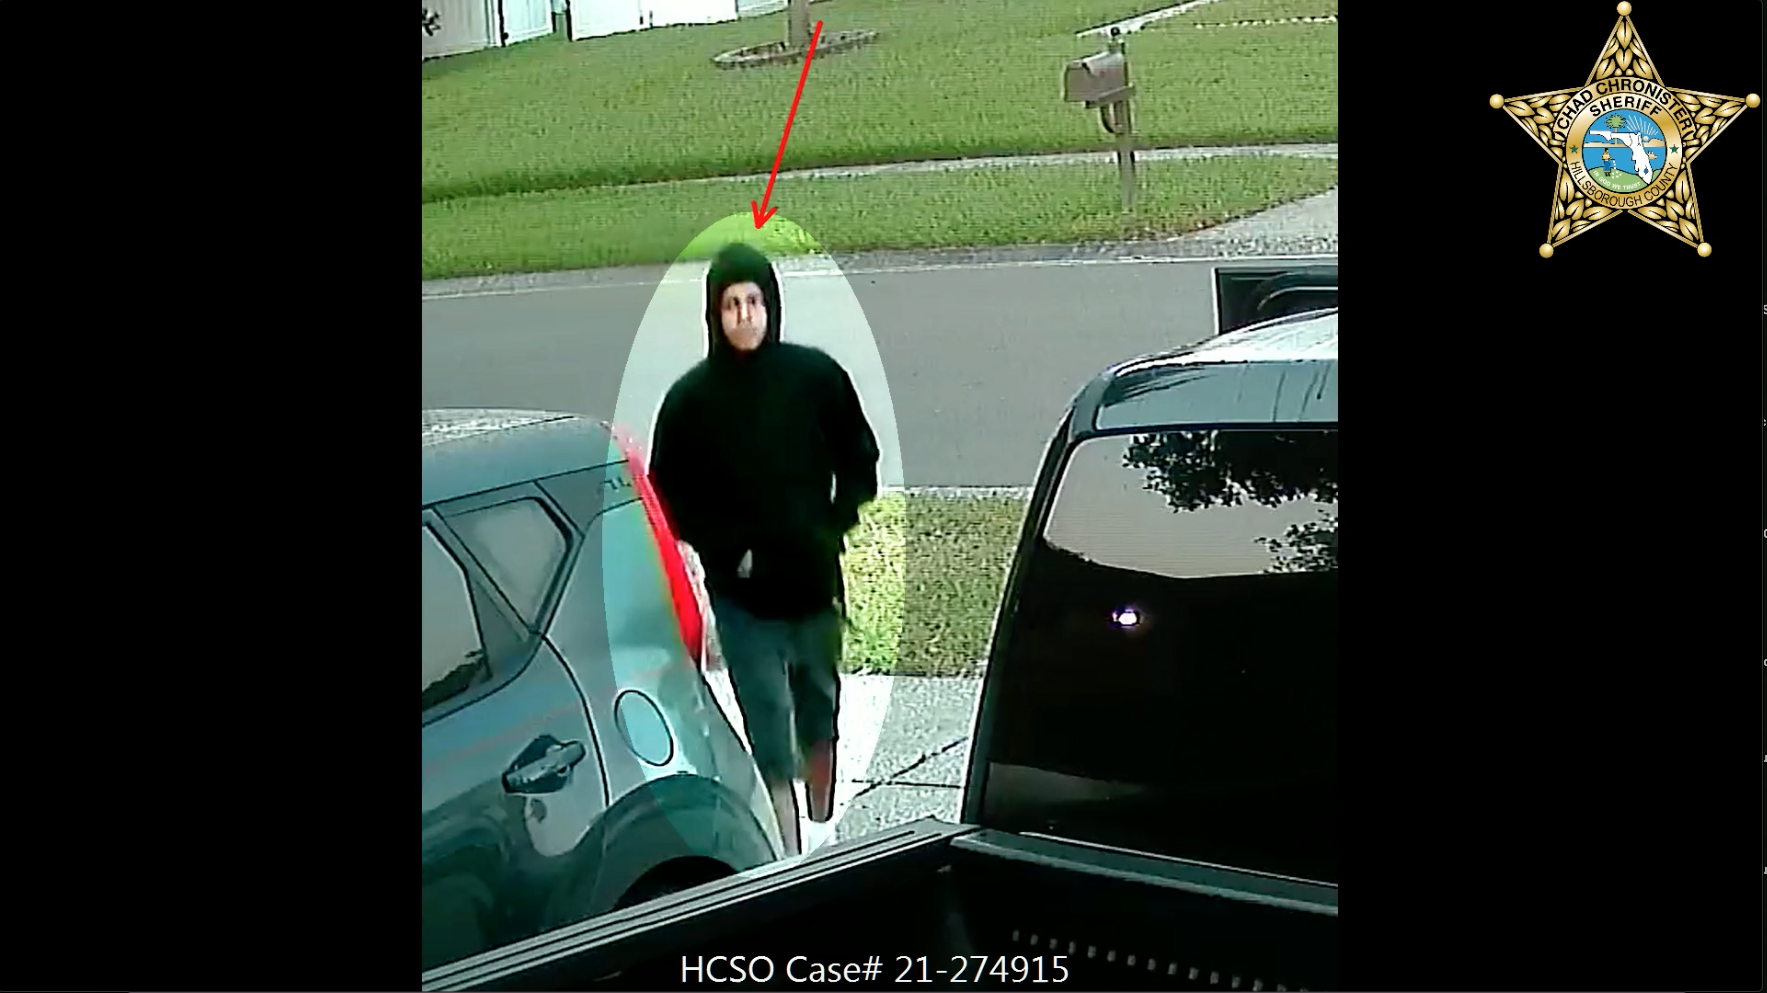 Unlocked car door helps suspects burglarize home